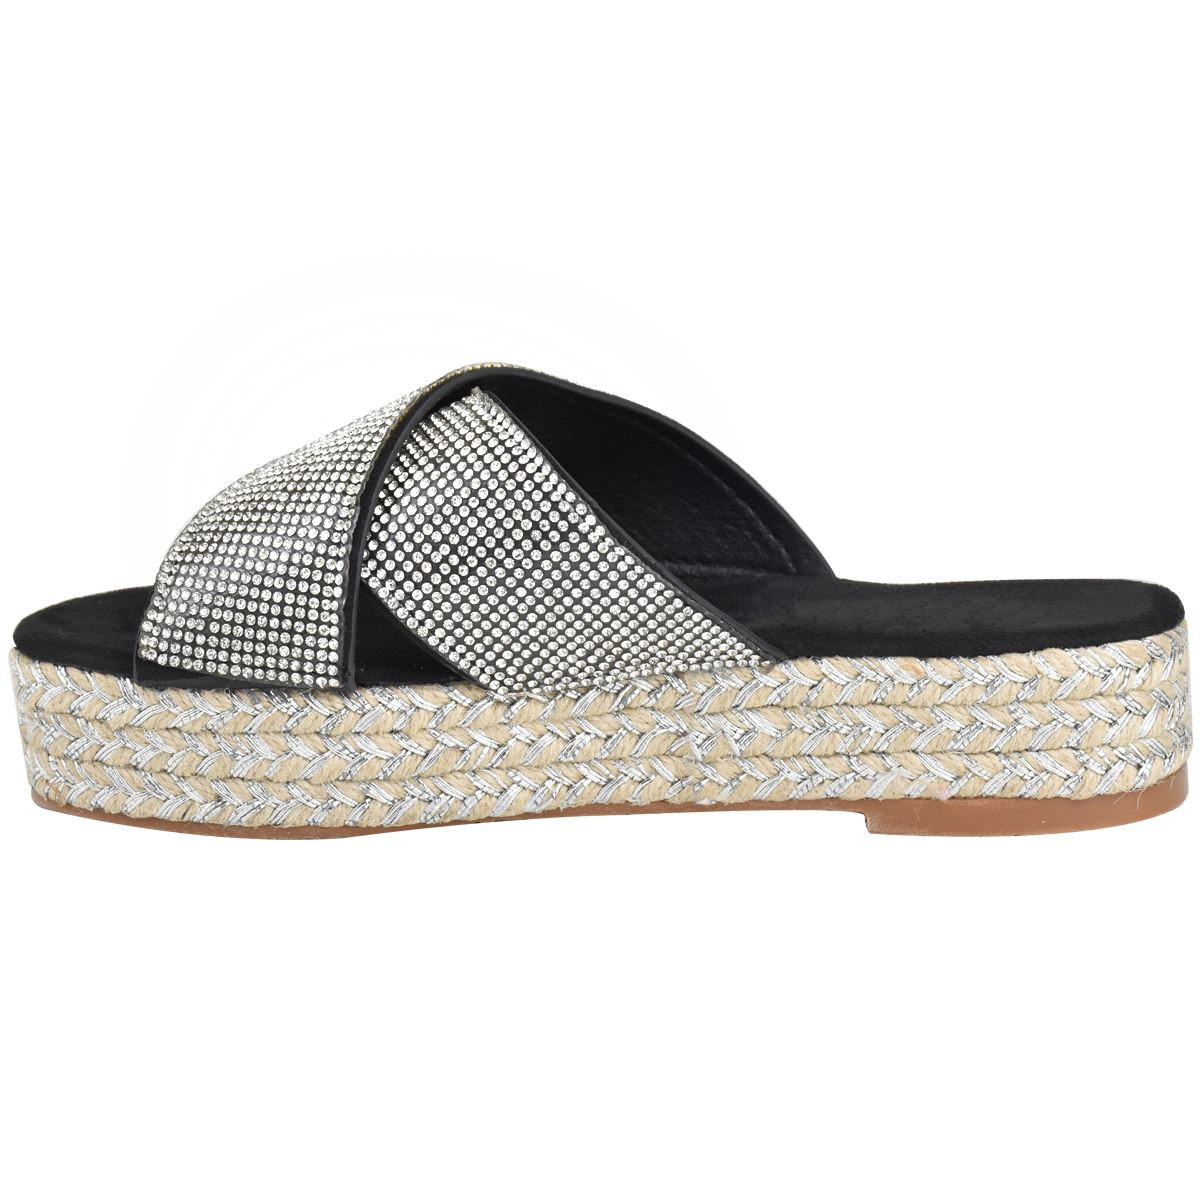 Womens-Diamante-Slip-On-Sandals-Flatforms-Sparkly-Platform-Summer-Size-UK thumbnail 5